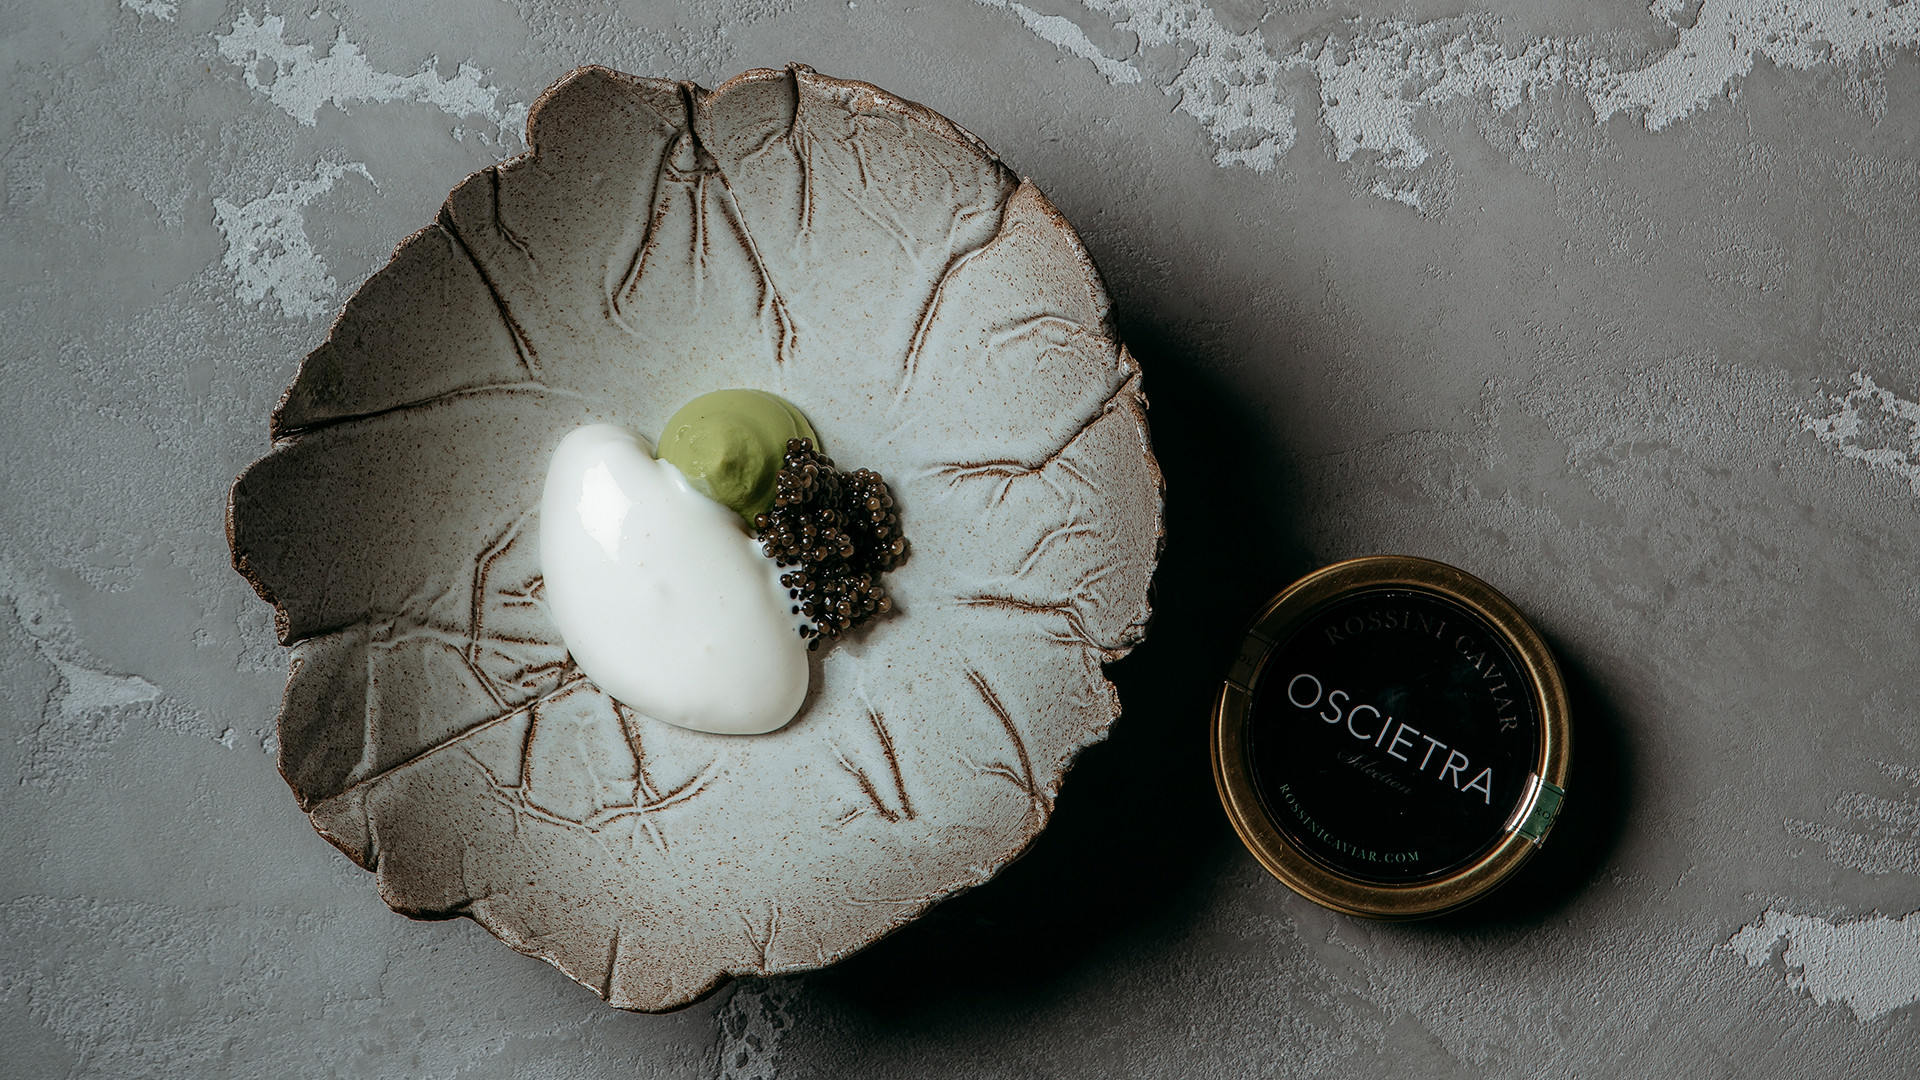 Avocado, burnt cream ice cream, oscietra caviar at Da Terra